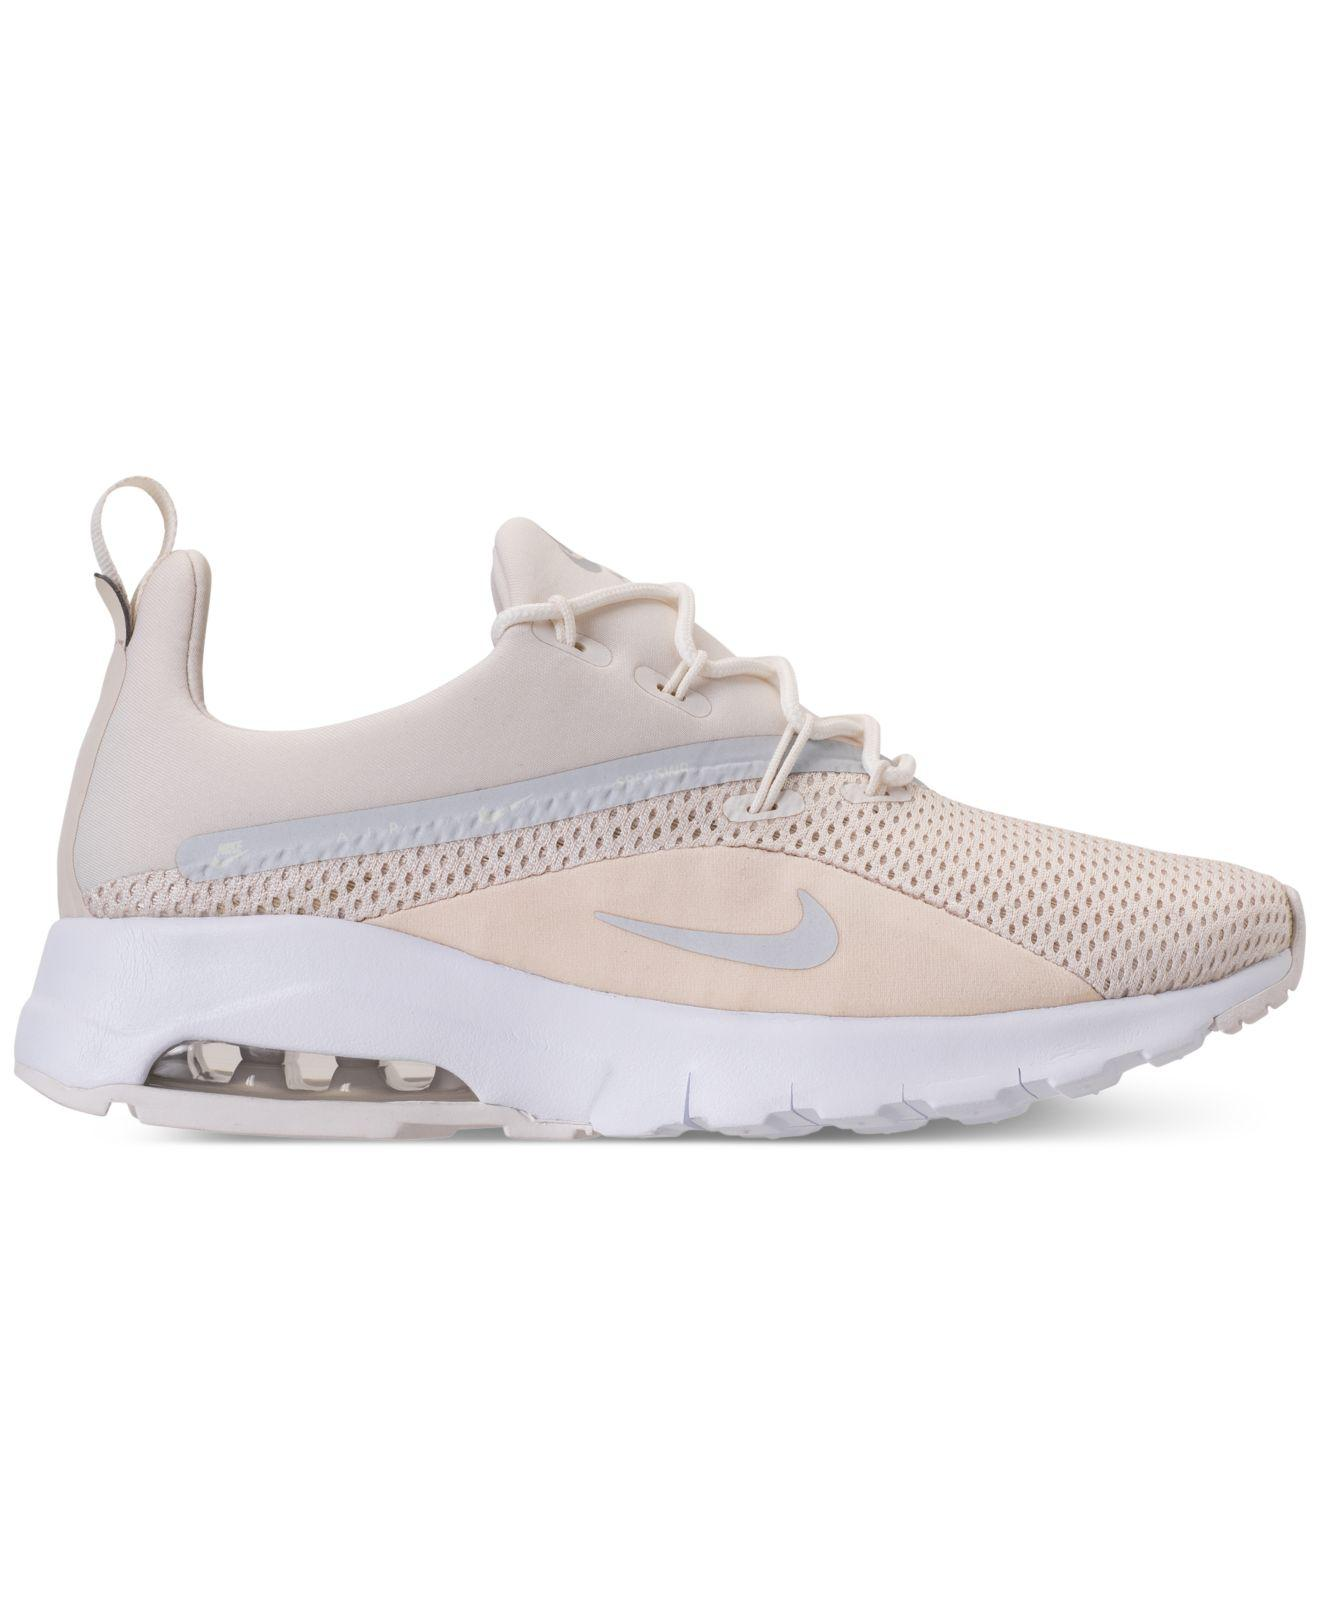 finest selection 06837 3a5a5 Nike Air Max Motion Racer 2 Running Sneakers From Finish Line - Save 30% -  Lyst